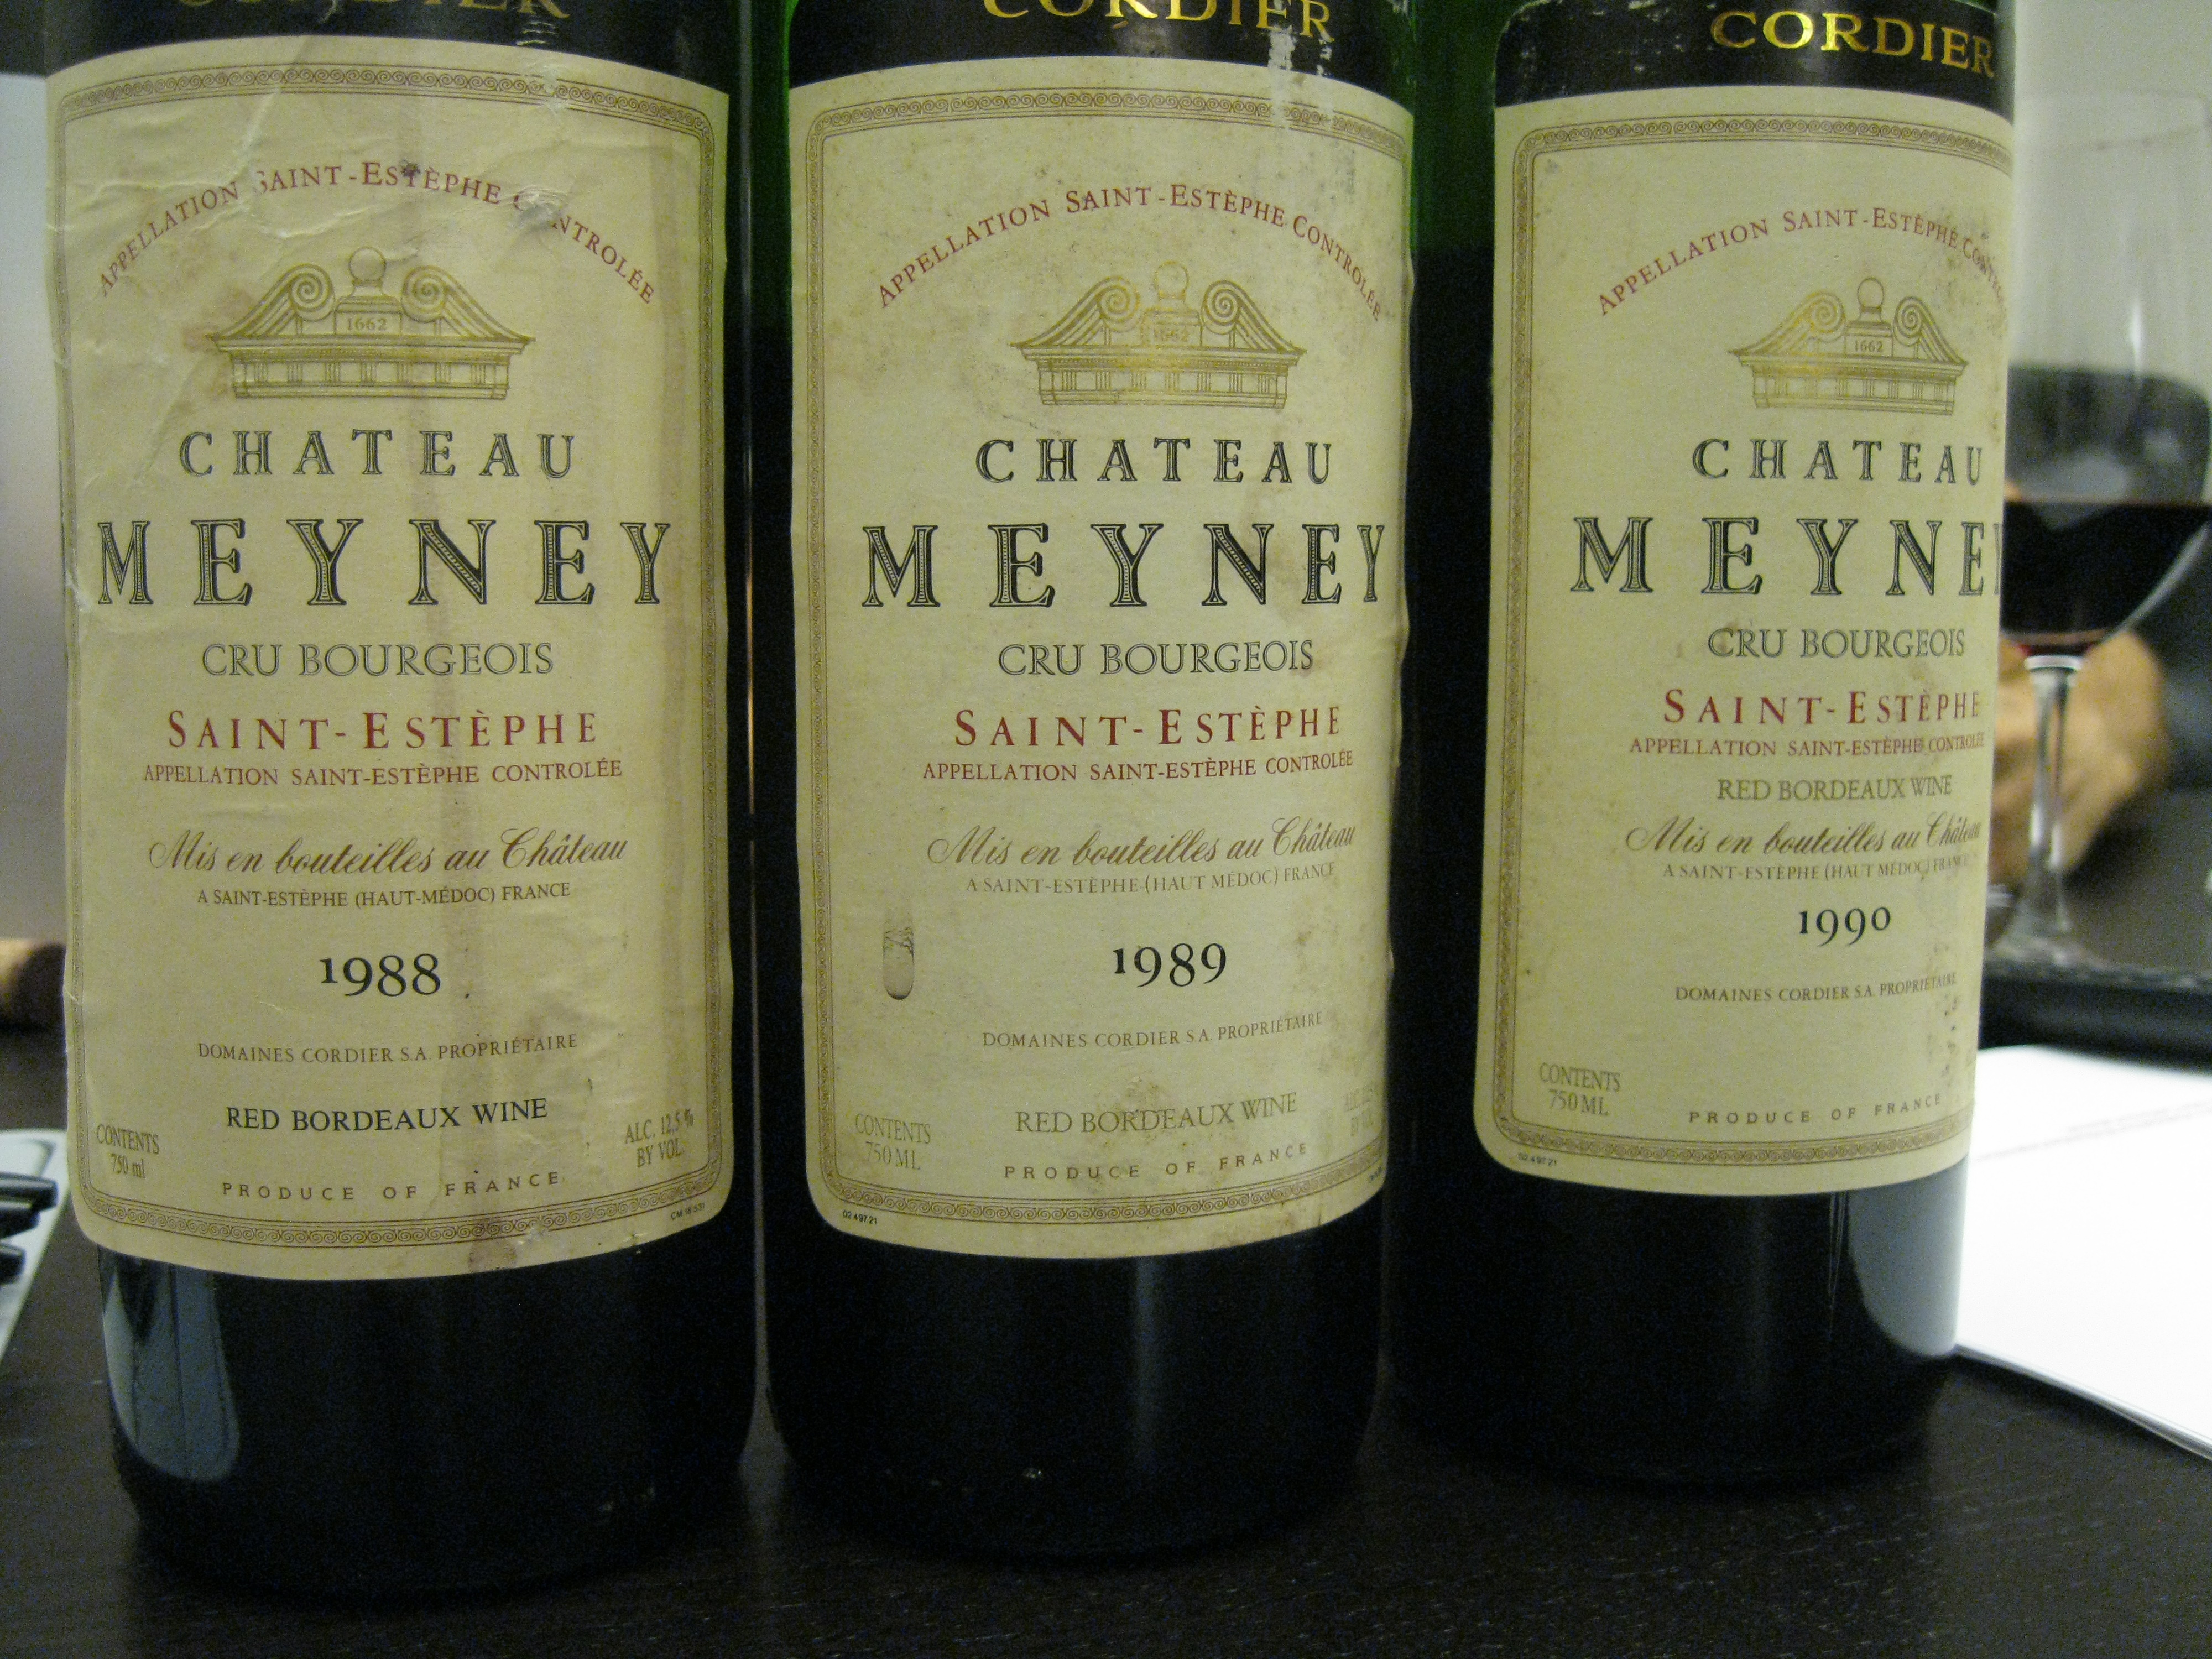 Chateau Meyney  2010 Bordeaux Red Blends Wine Red Blends Wine